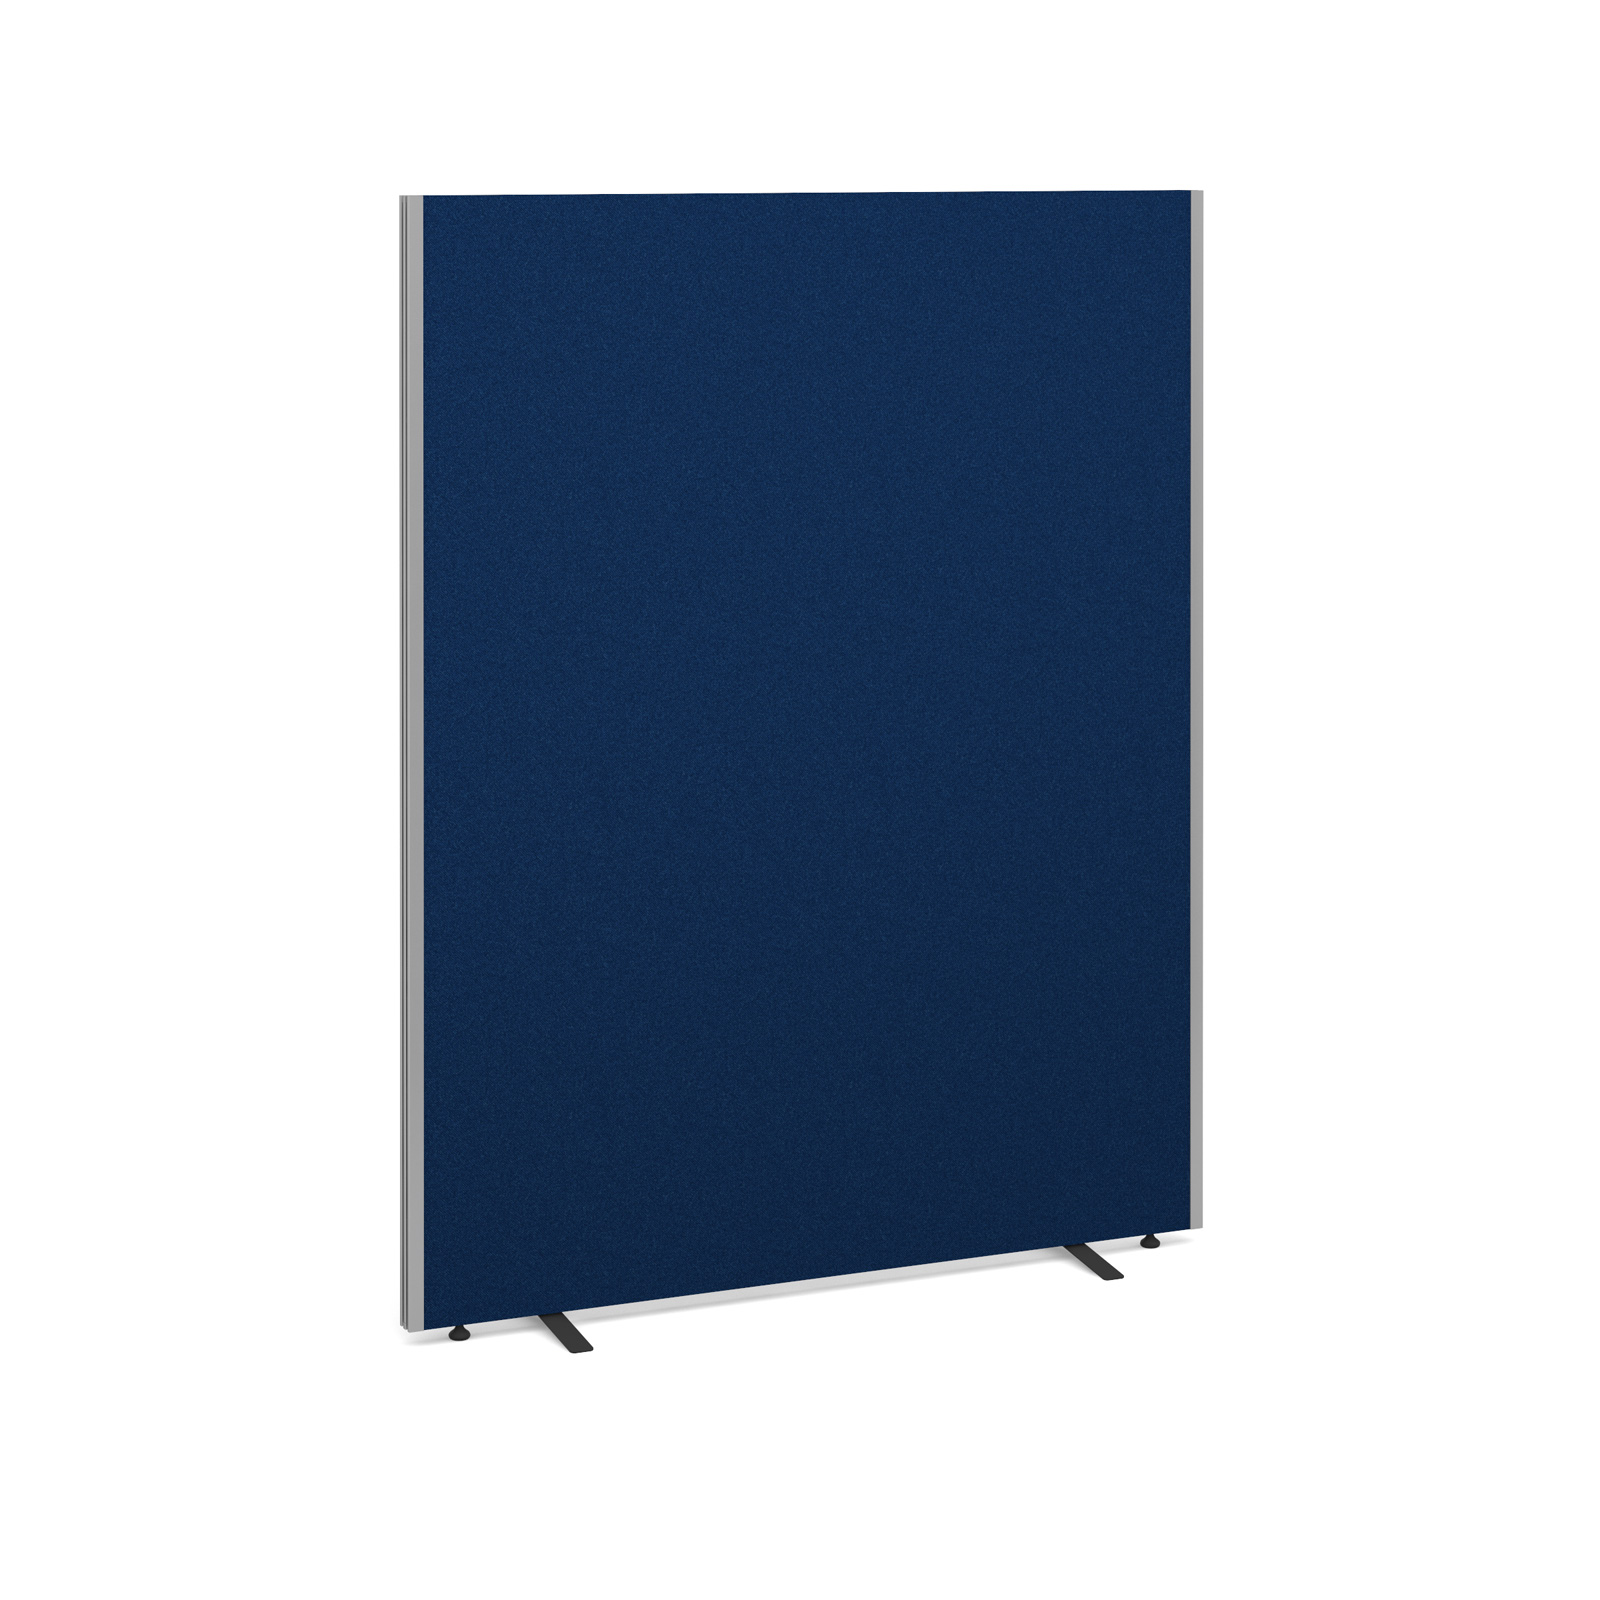 Floor standing fabric screen